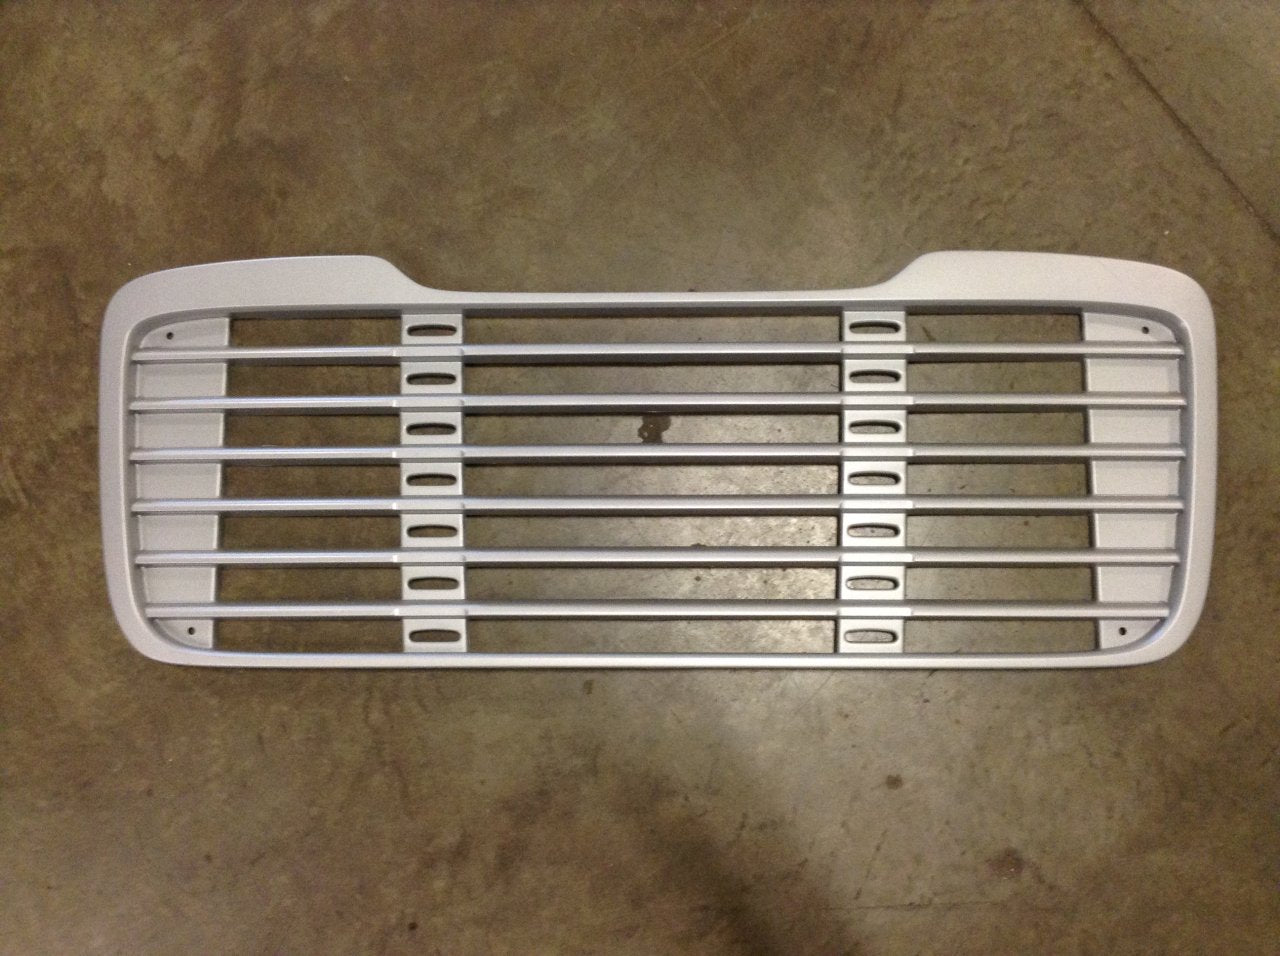 18623-N Freightliner Business Class M2 106 112 Grille Painted  A17-14104-000 A17-14787-000 - BC Heavy Truck Solutions